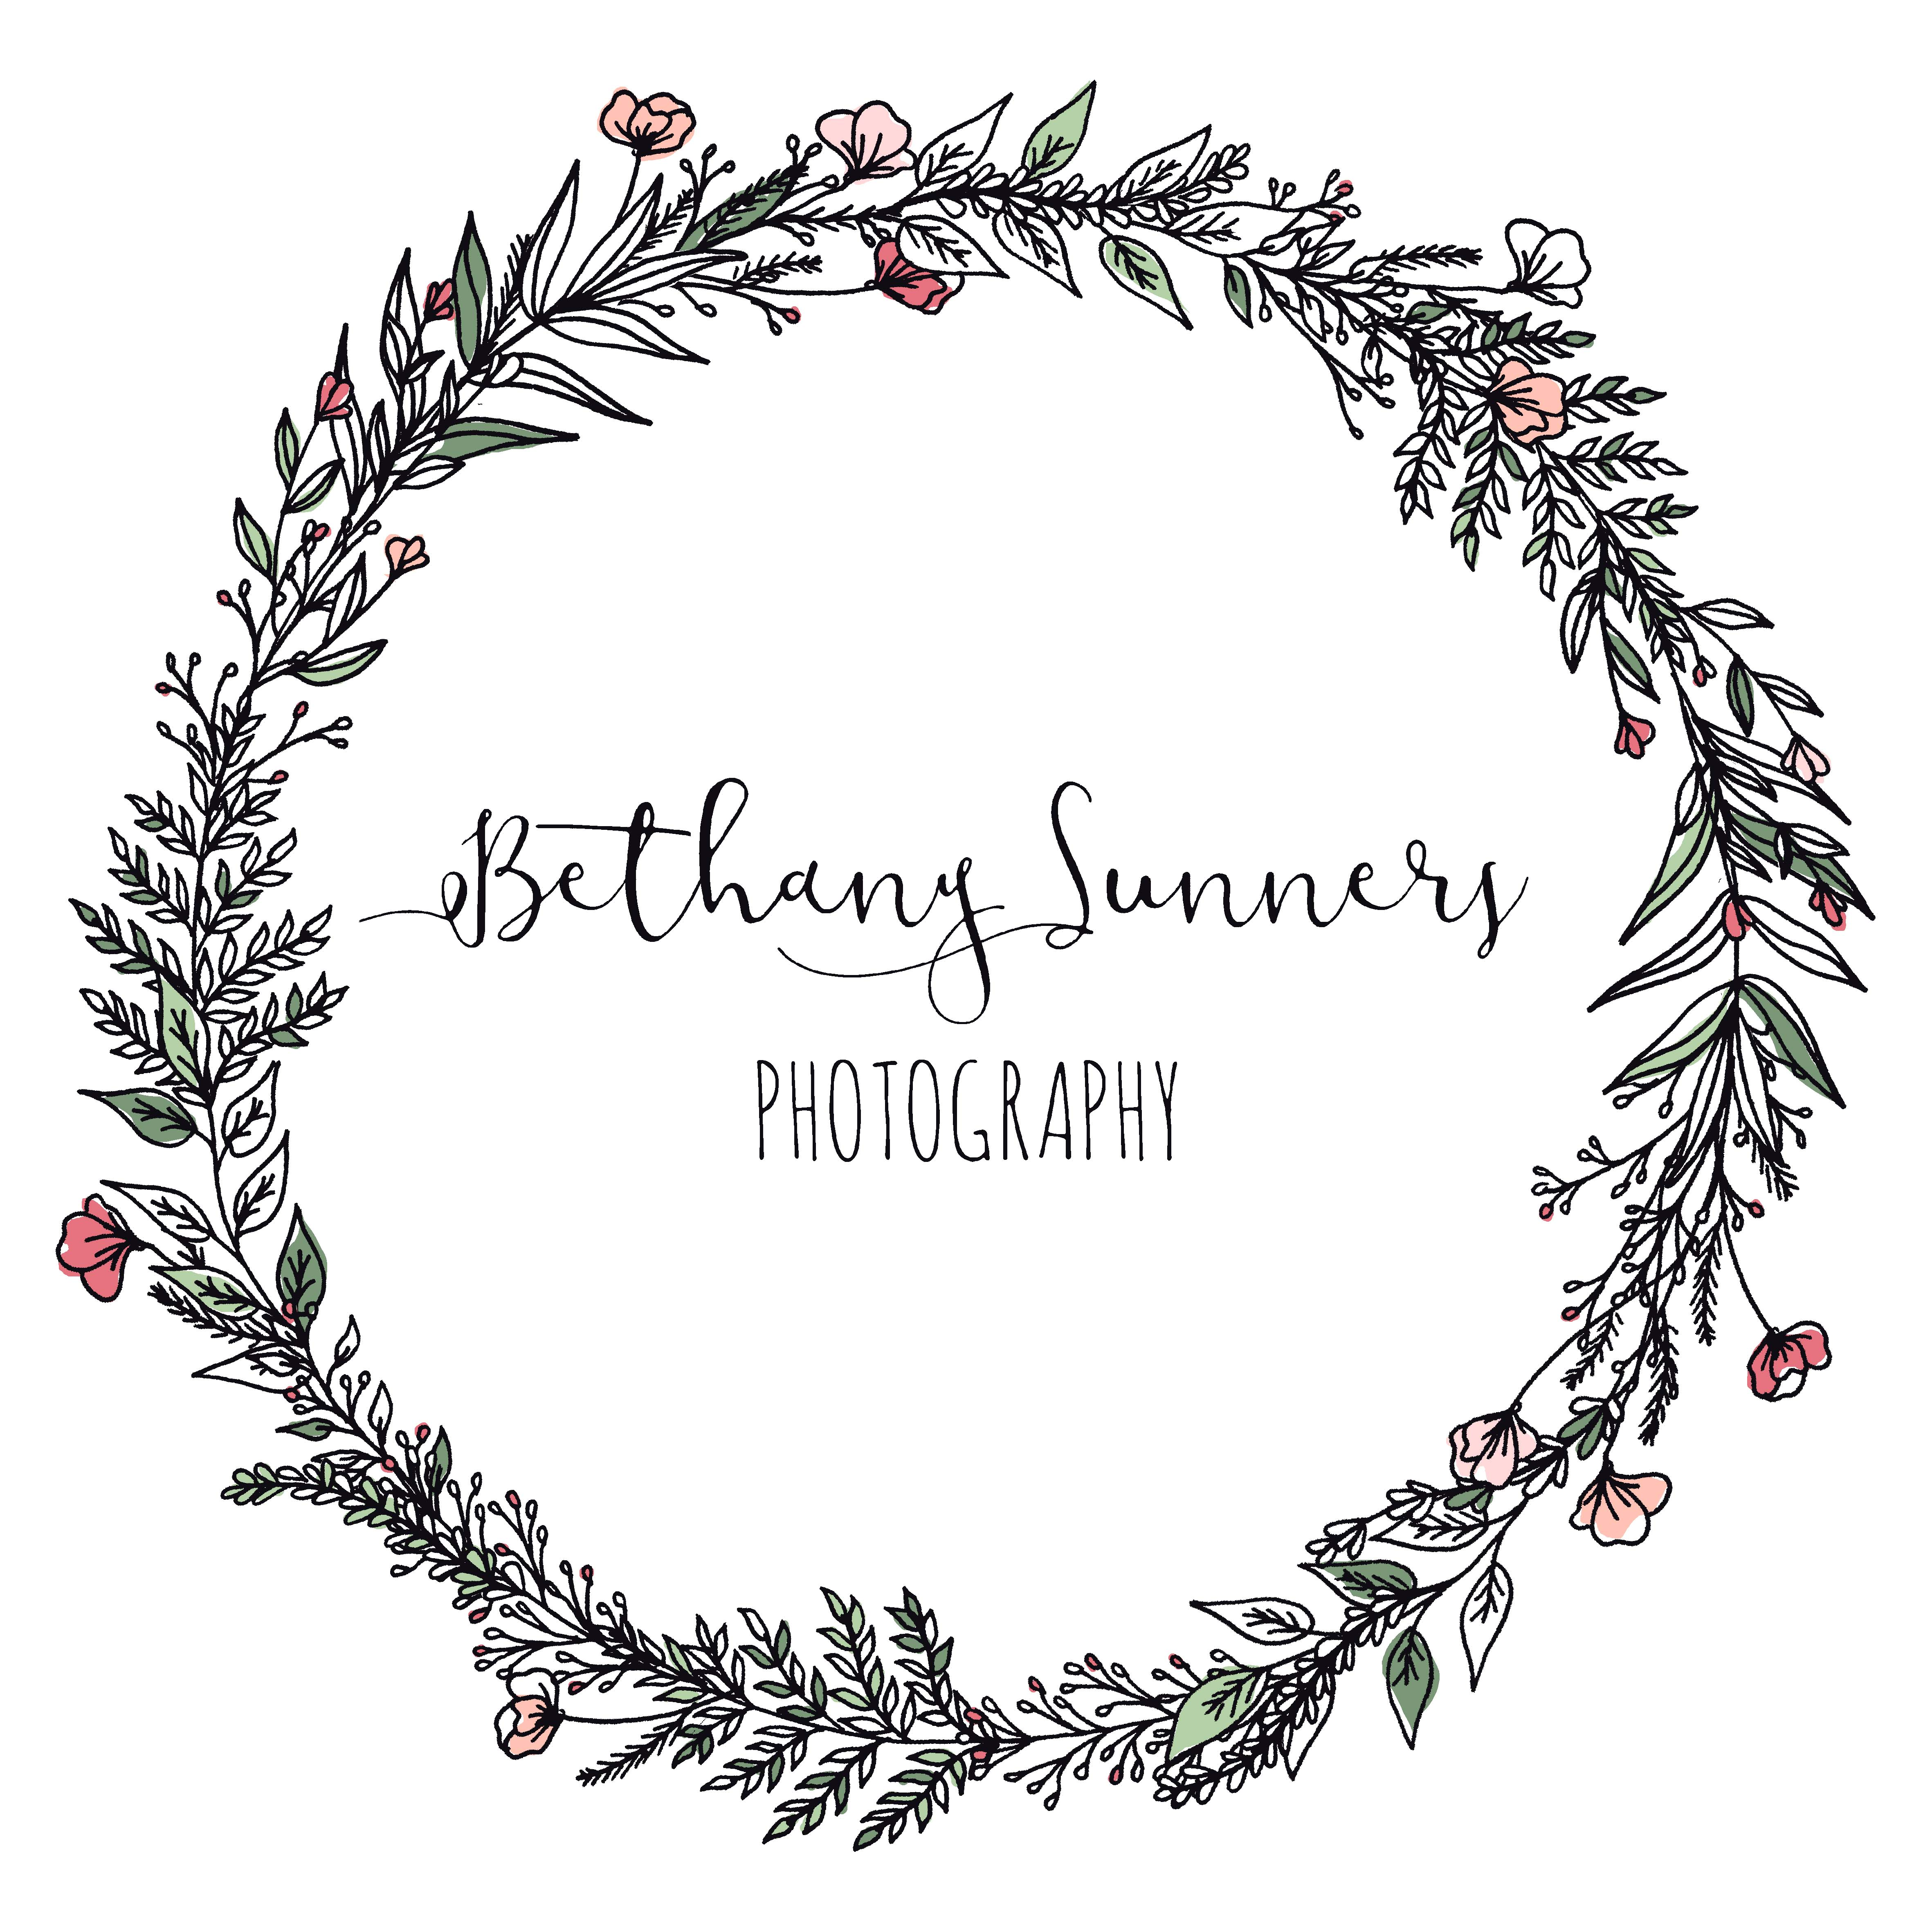 Bethany Sunners Photography